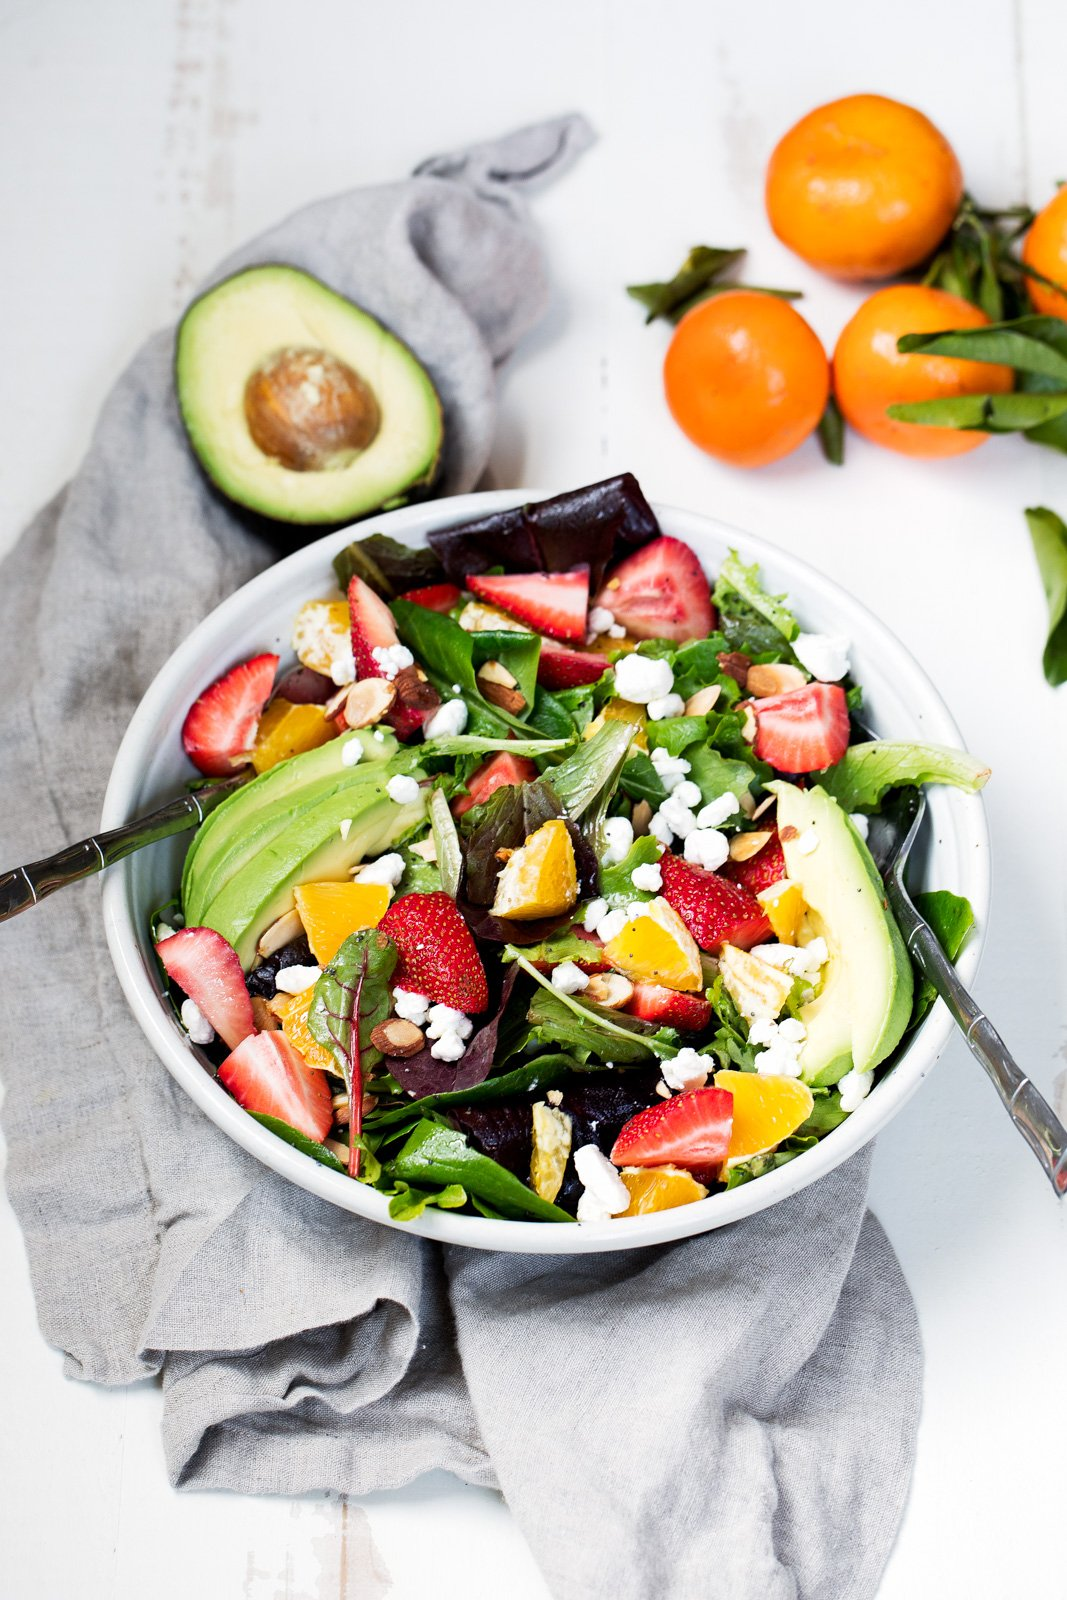 Strawberry Avocado Salad packed with heart-healthy fats, creamy goat cheese, toasted almonds and a light citrus poppyseed dressing. Like Panera's salad -- but so much better!